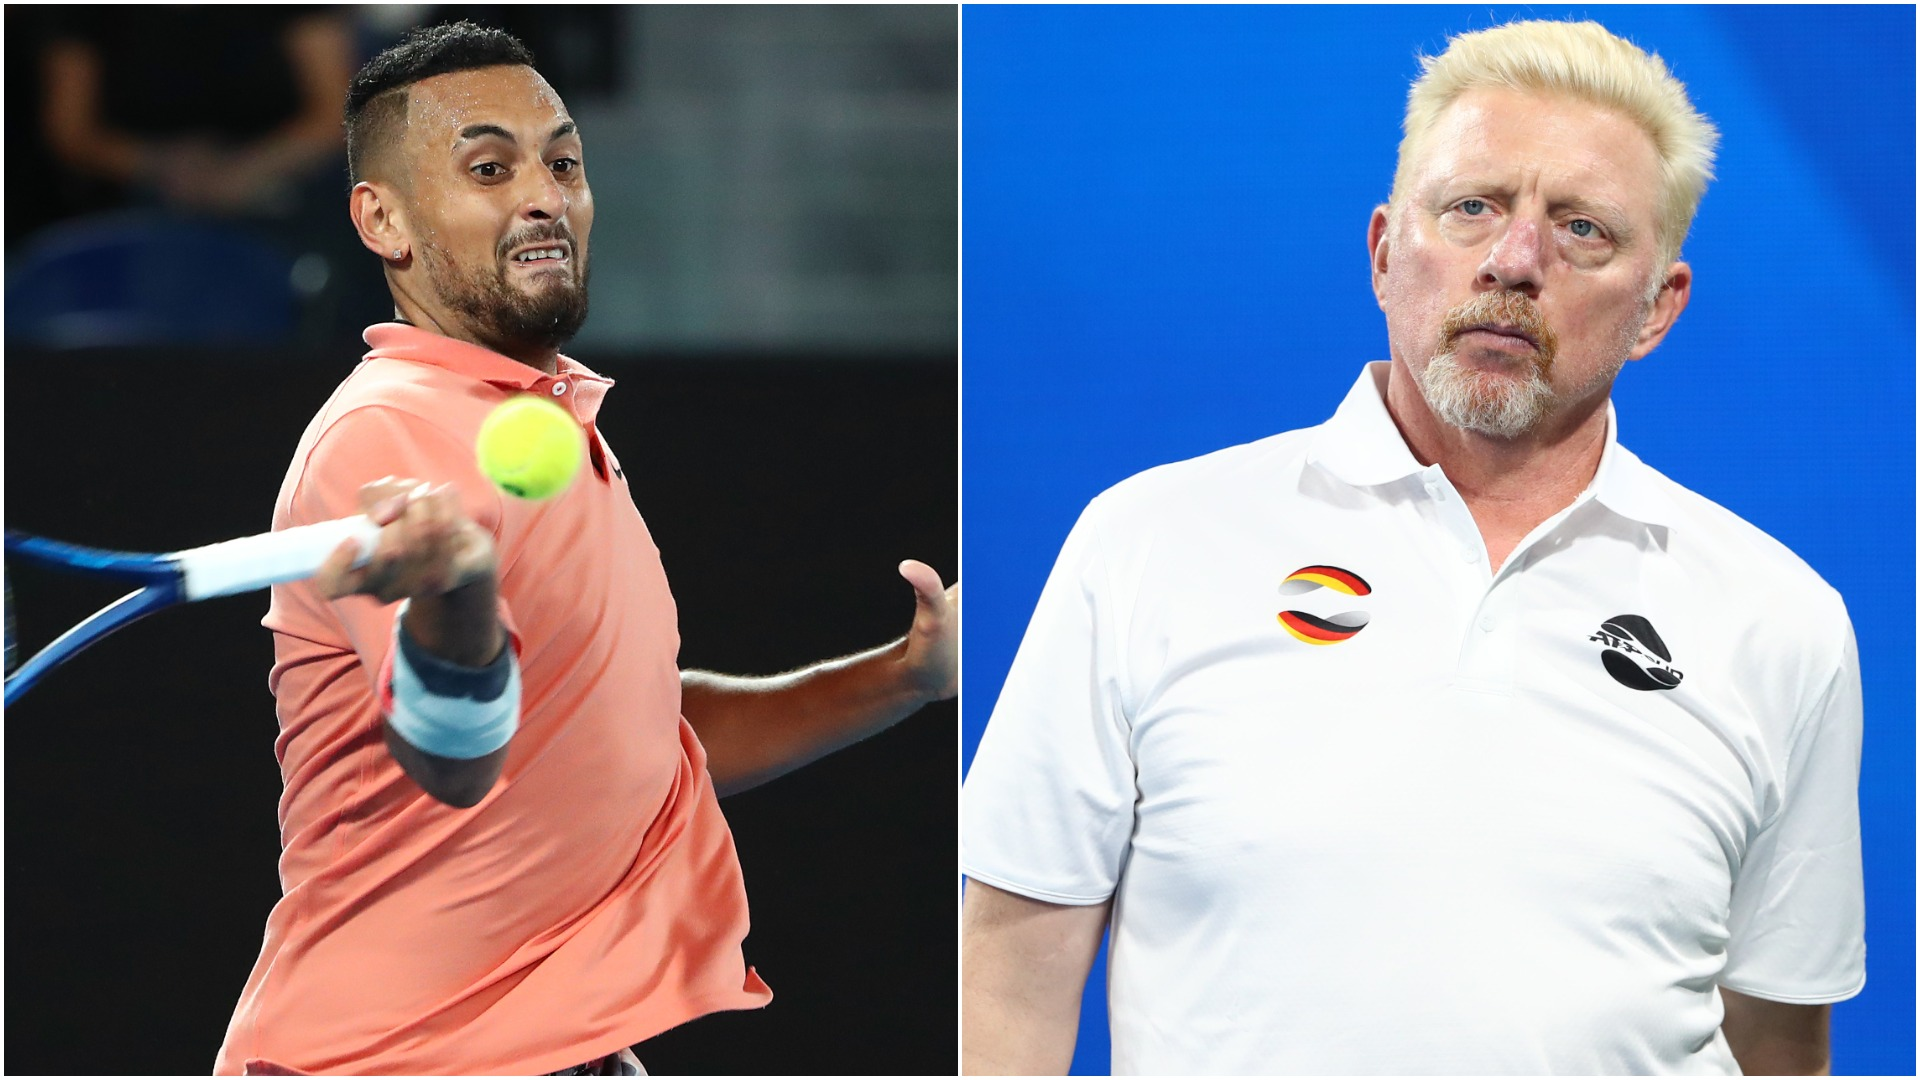 Boris Becker and Nick Kyrgios were involved in a tense Twitter stand-off over the Australian's criticism of Alexander Zverev.